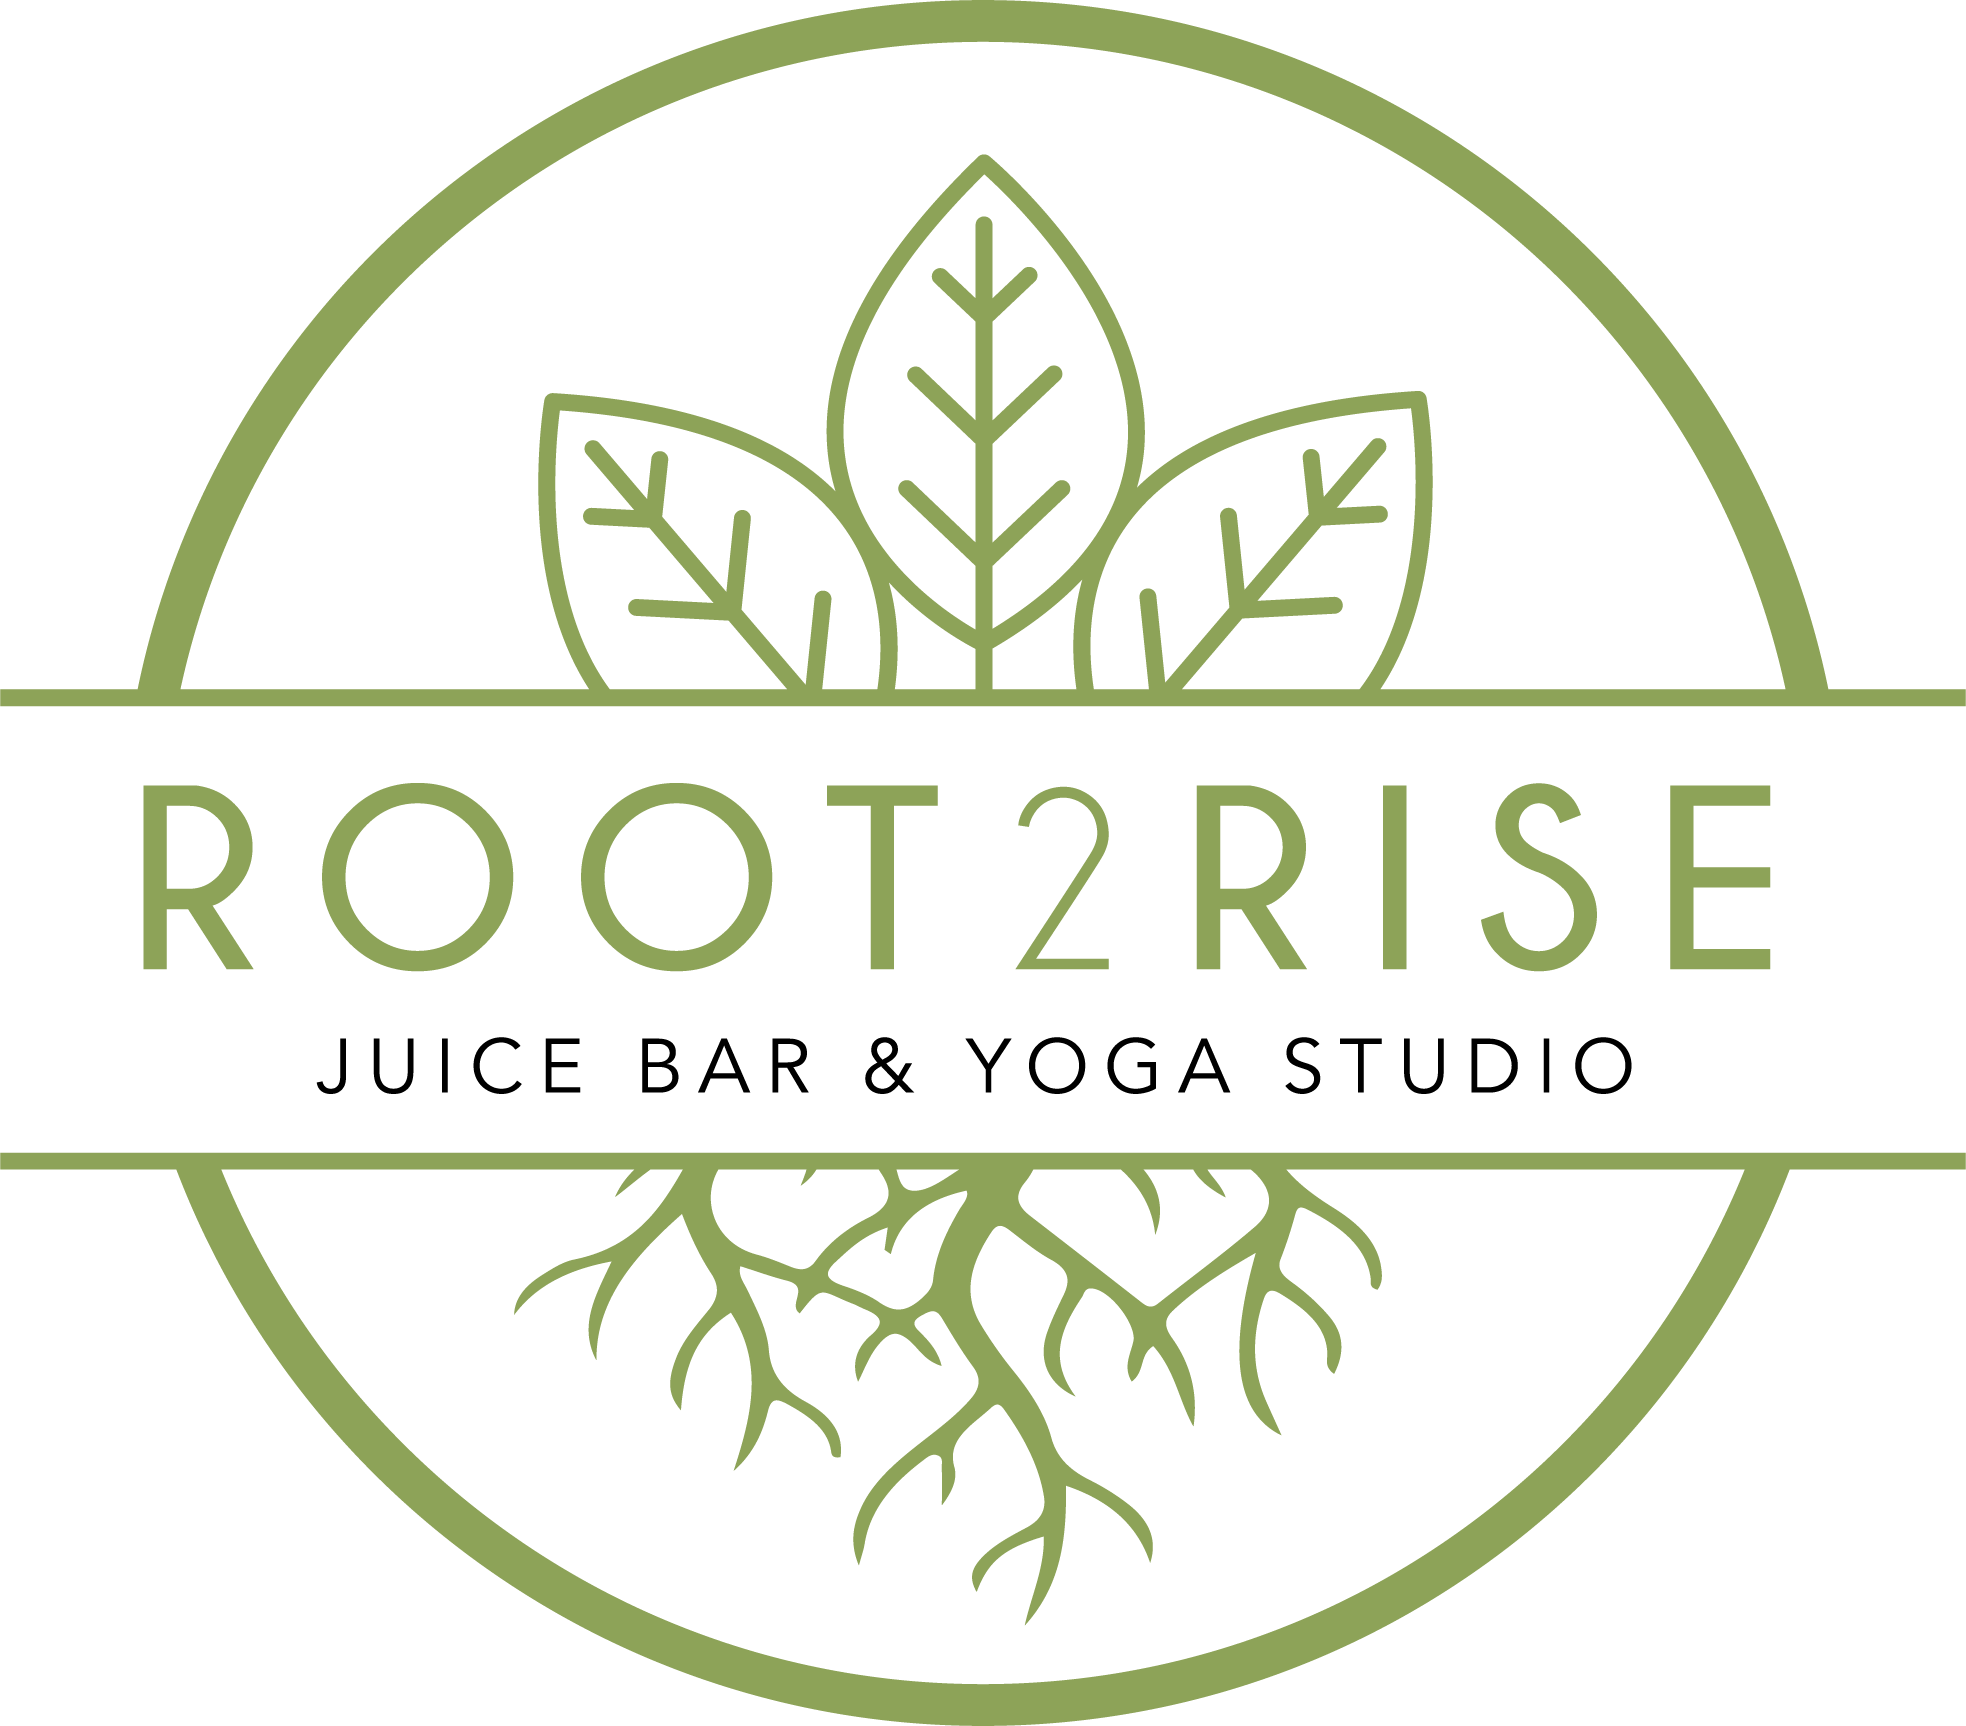 Extra Services – Root2RiseWellness